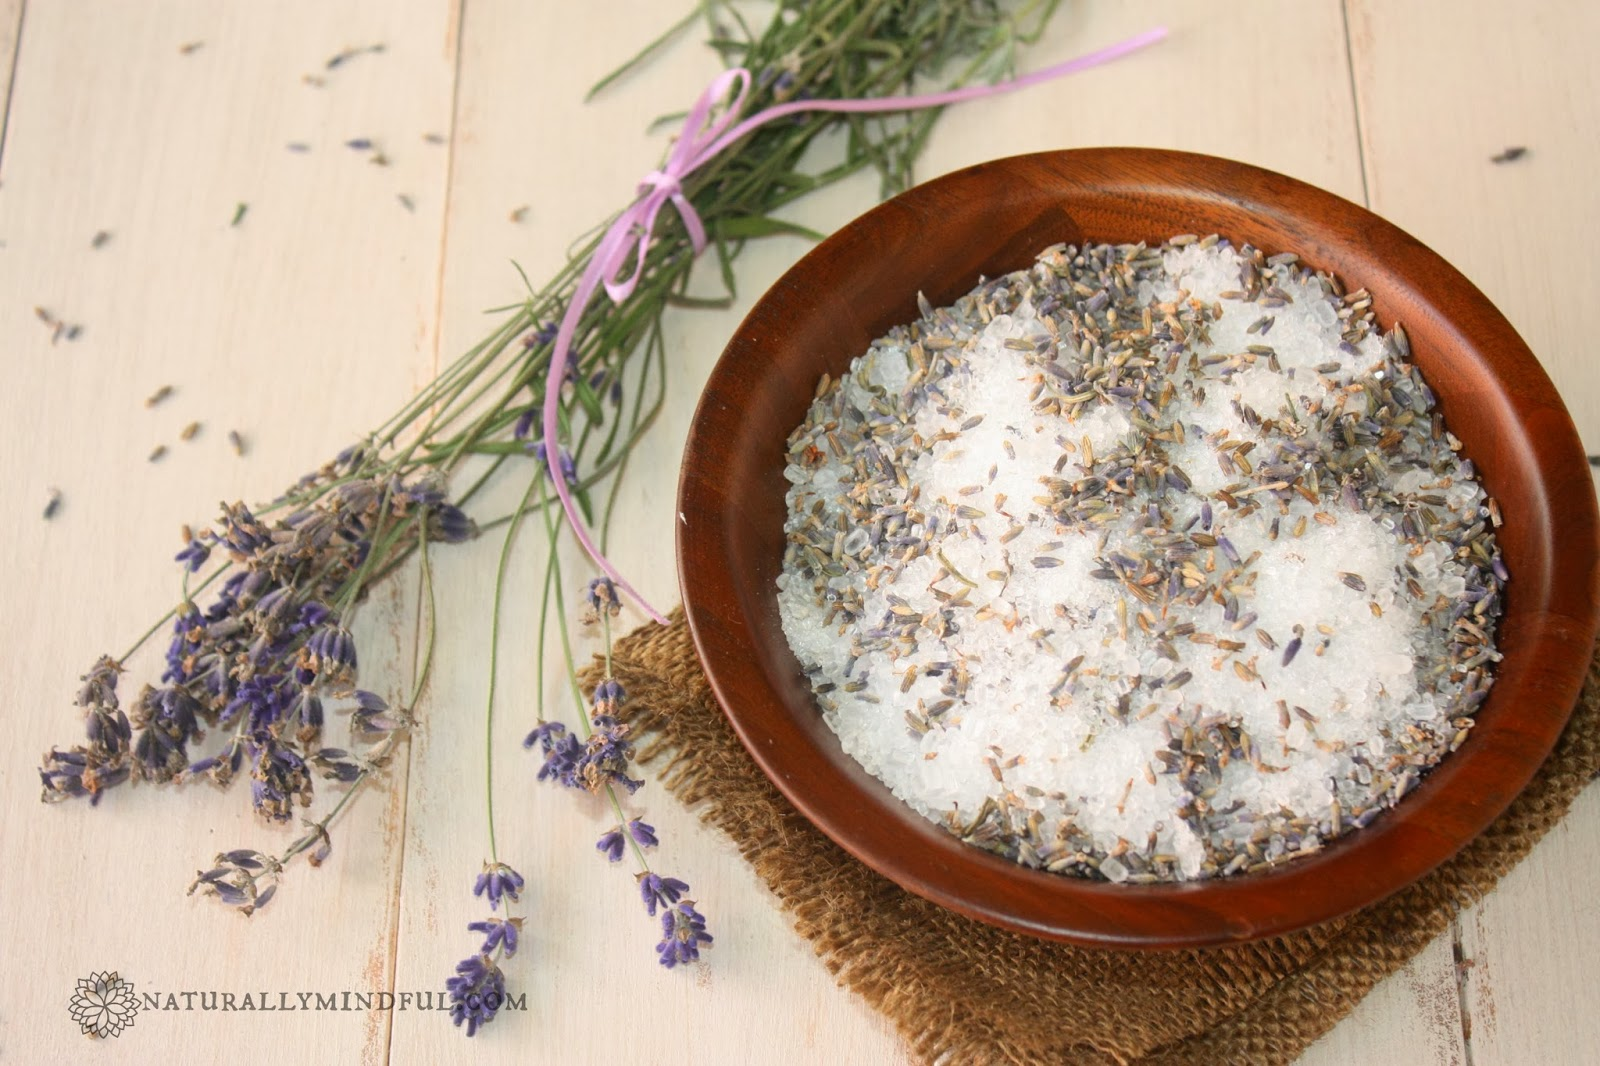 Lavender Eucalyptus Bath SoakPrimally Inspired